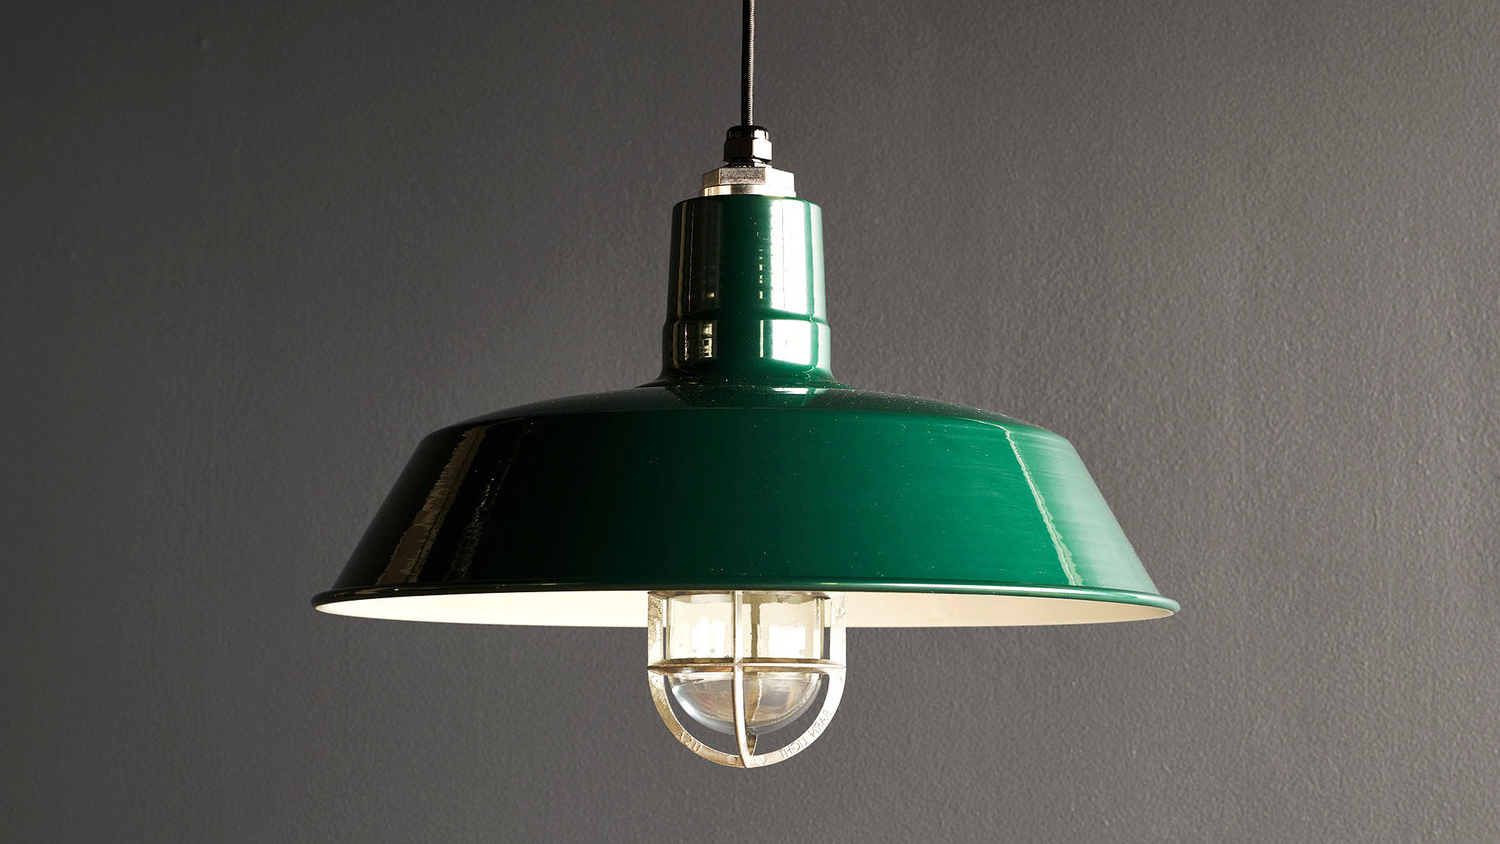 Well Known Score Big Savings: Brayden Studio Melora 1 Light Single For Melora 1 Light Single Geometric Pendants (View 18 of 20)